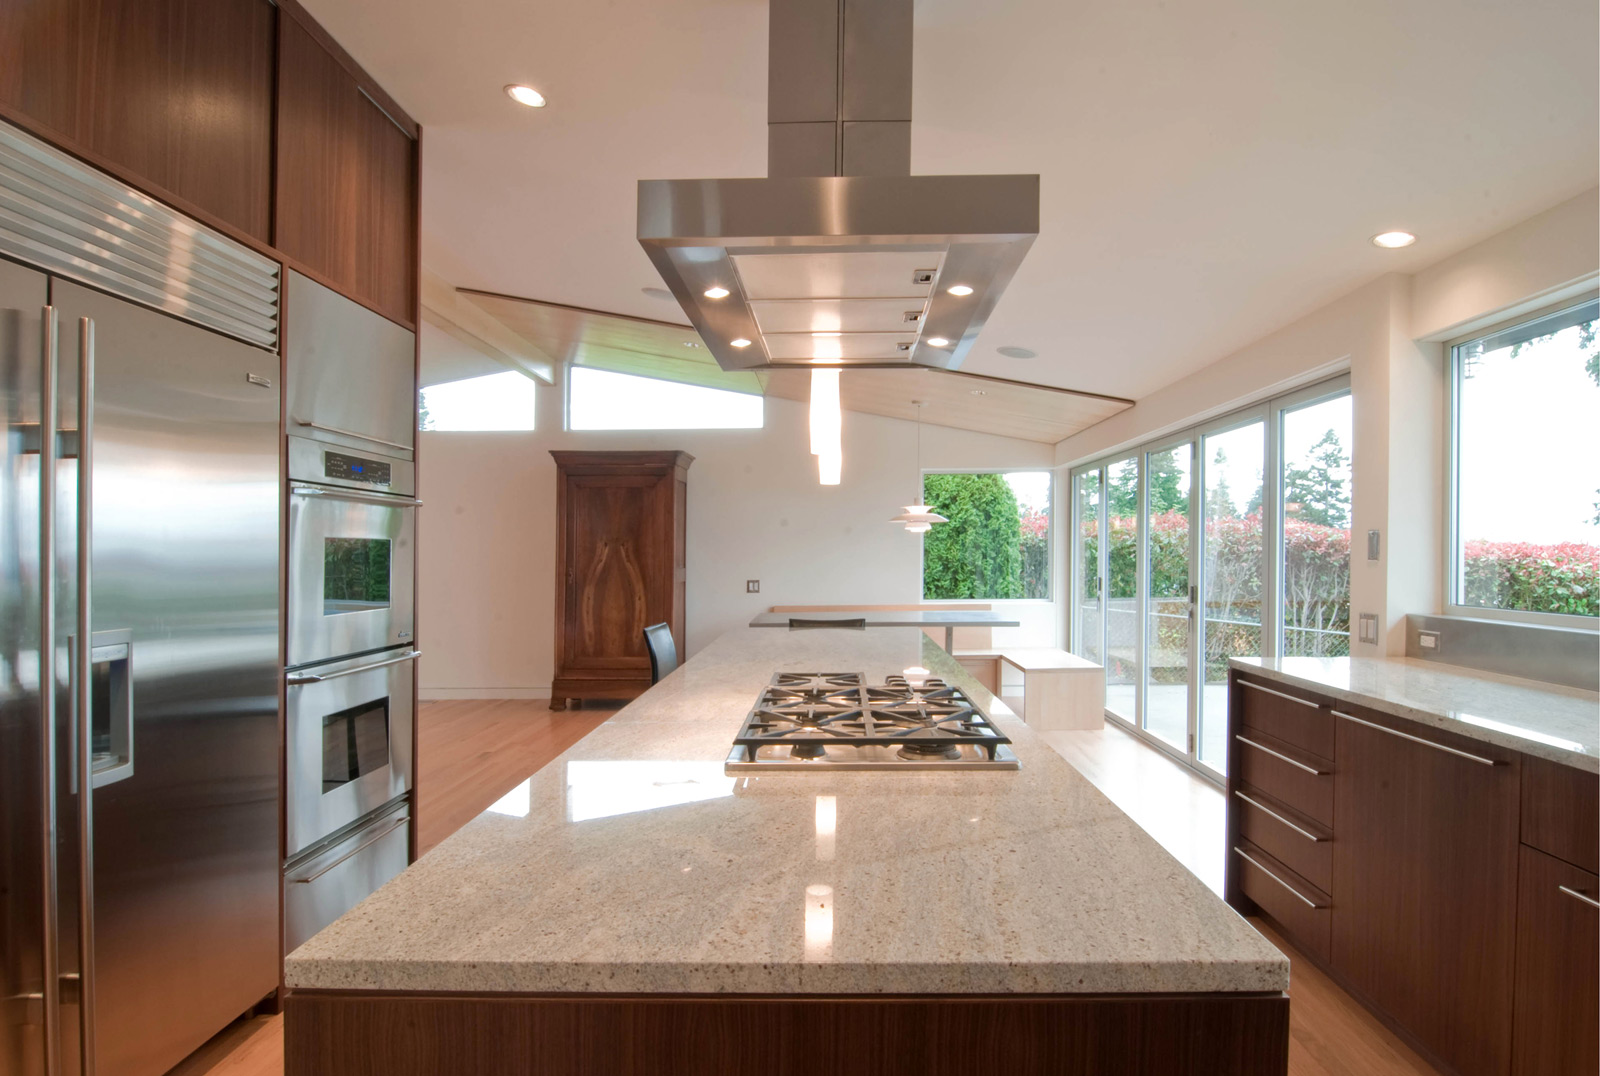 Should Kitchen Cabinets Go Up To Ceiling Design Strategies For Kitchen Hood Venting Build Blog